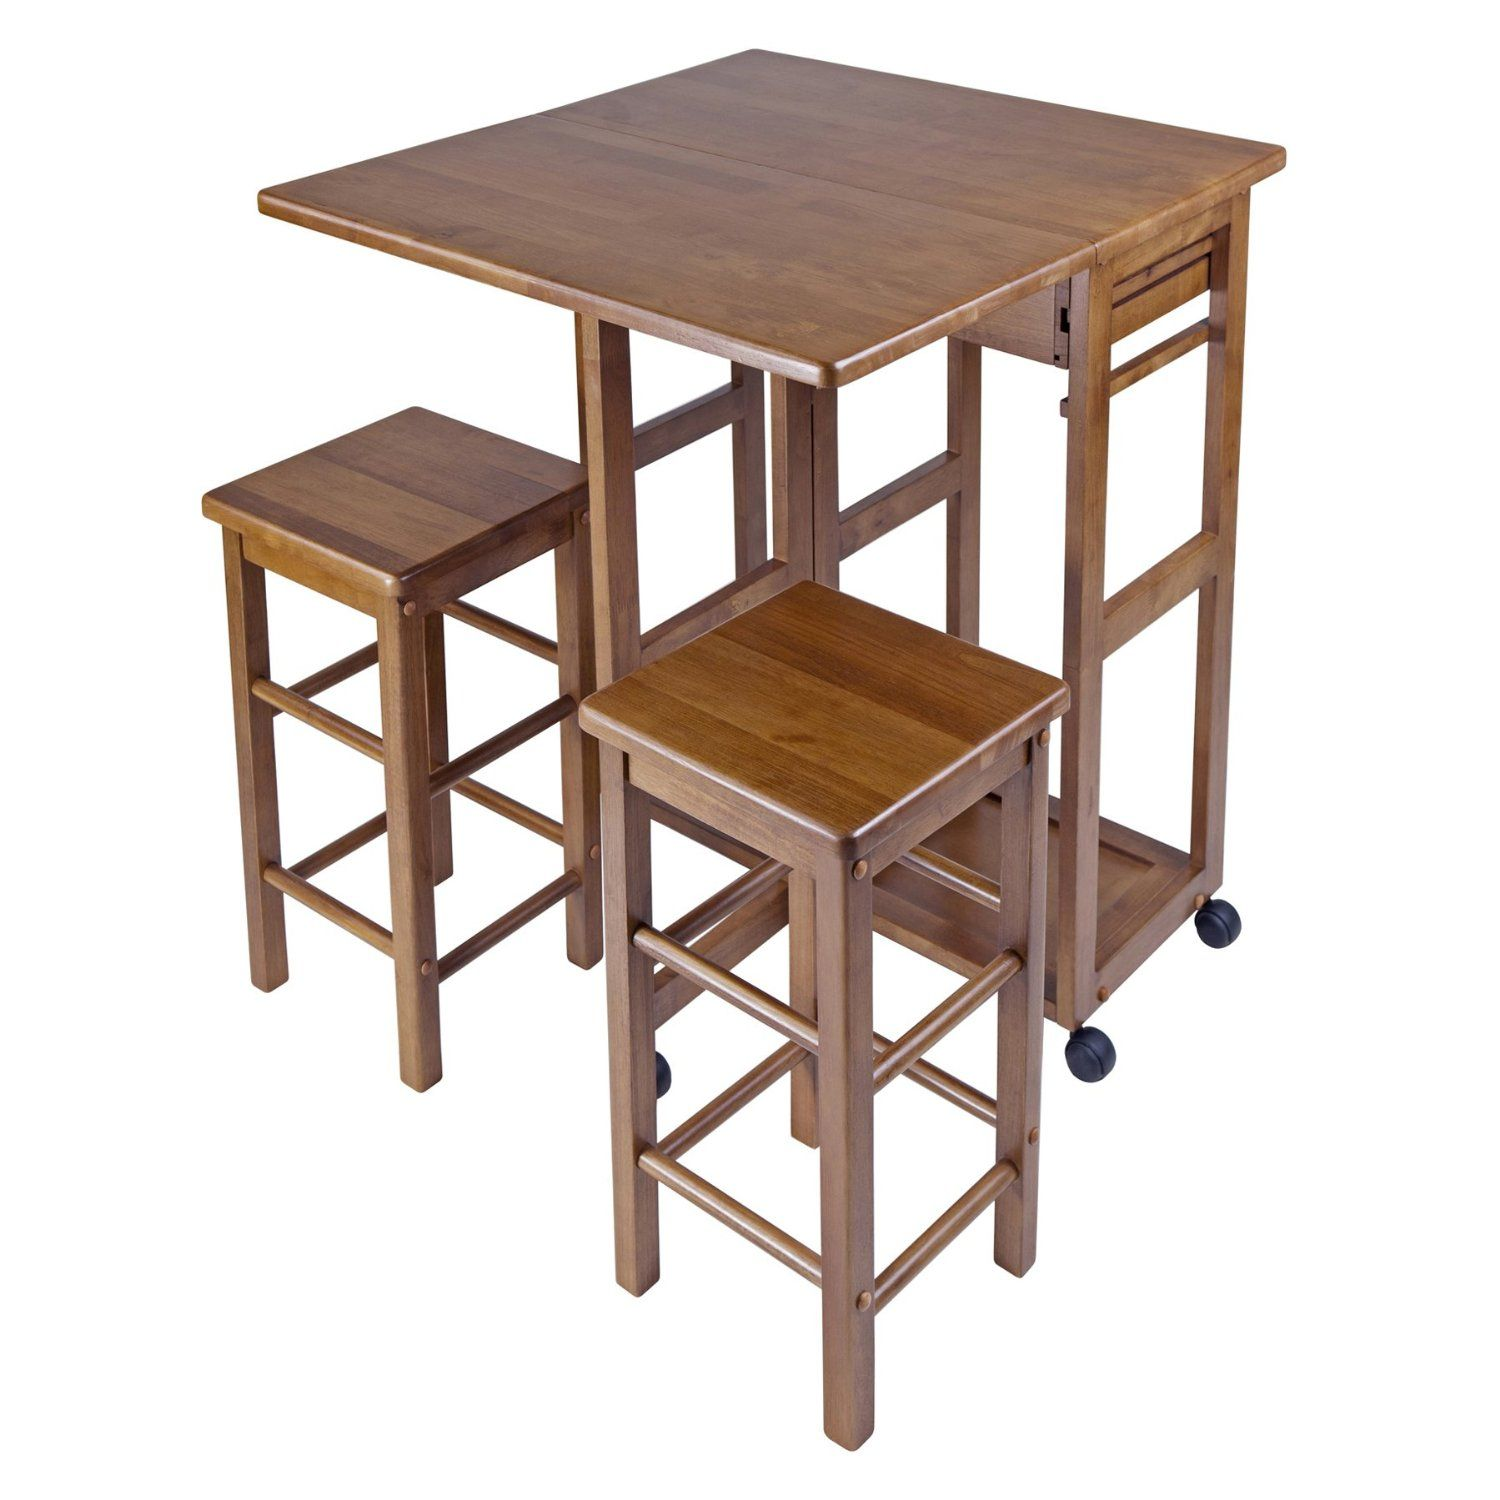 Amazoncom Winsome Wood Table Drop Leaf Square Stool Natural